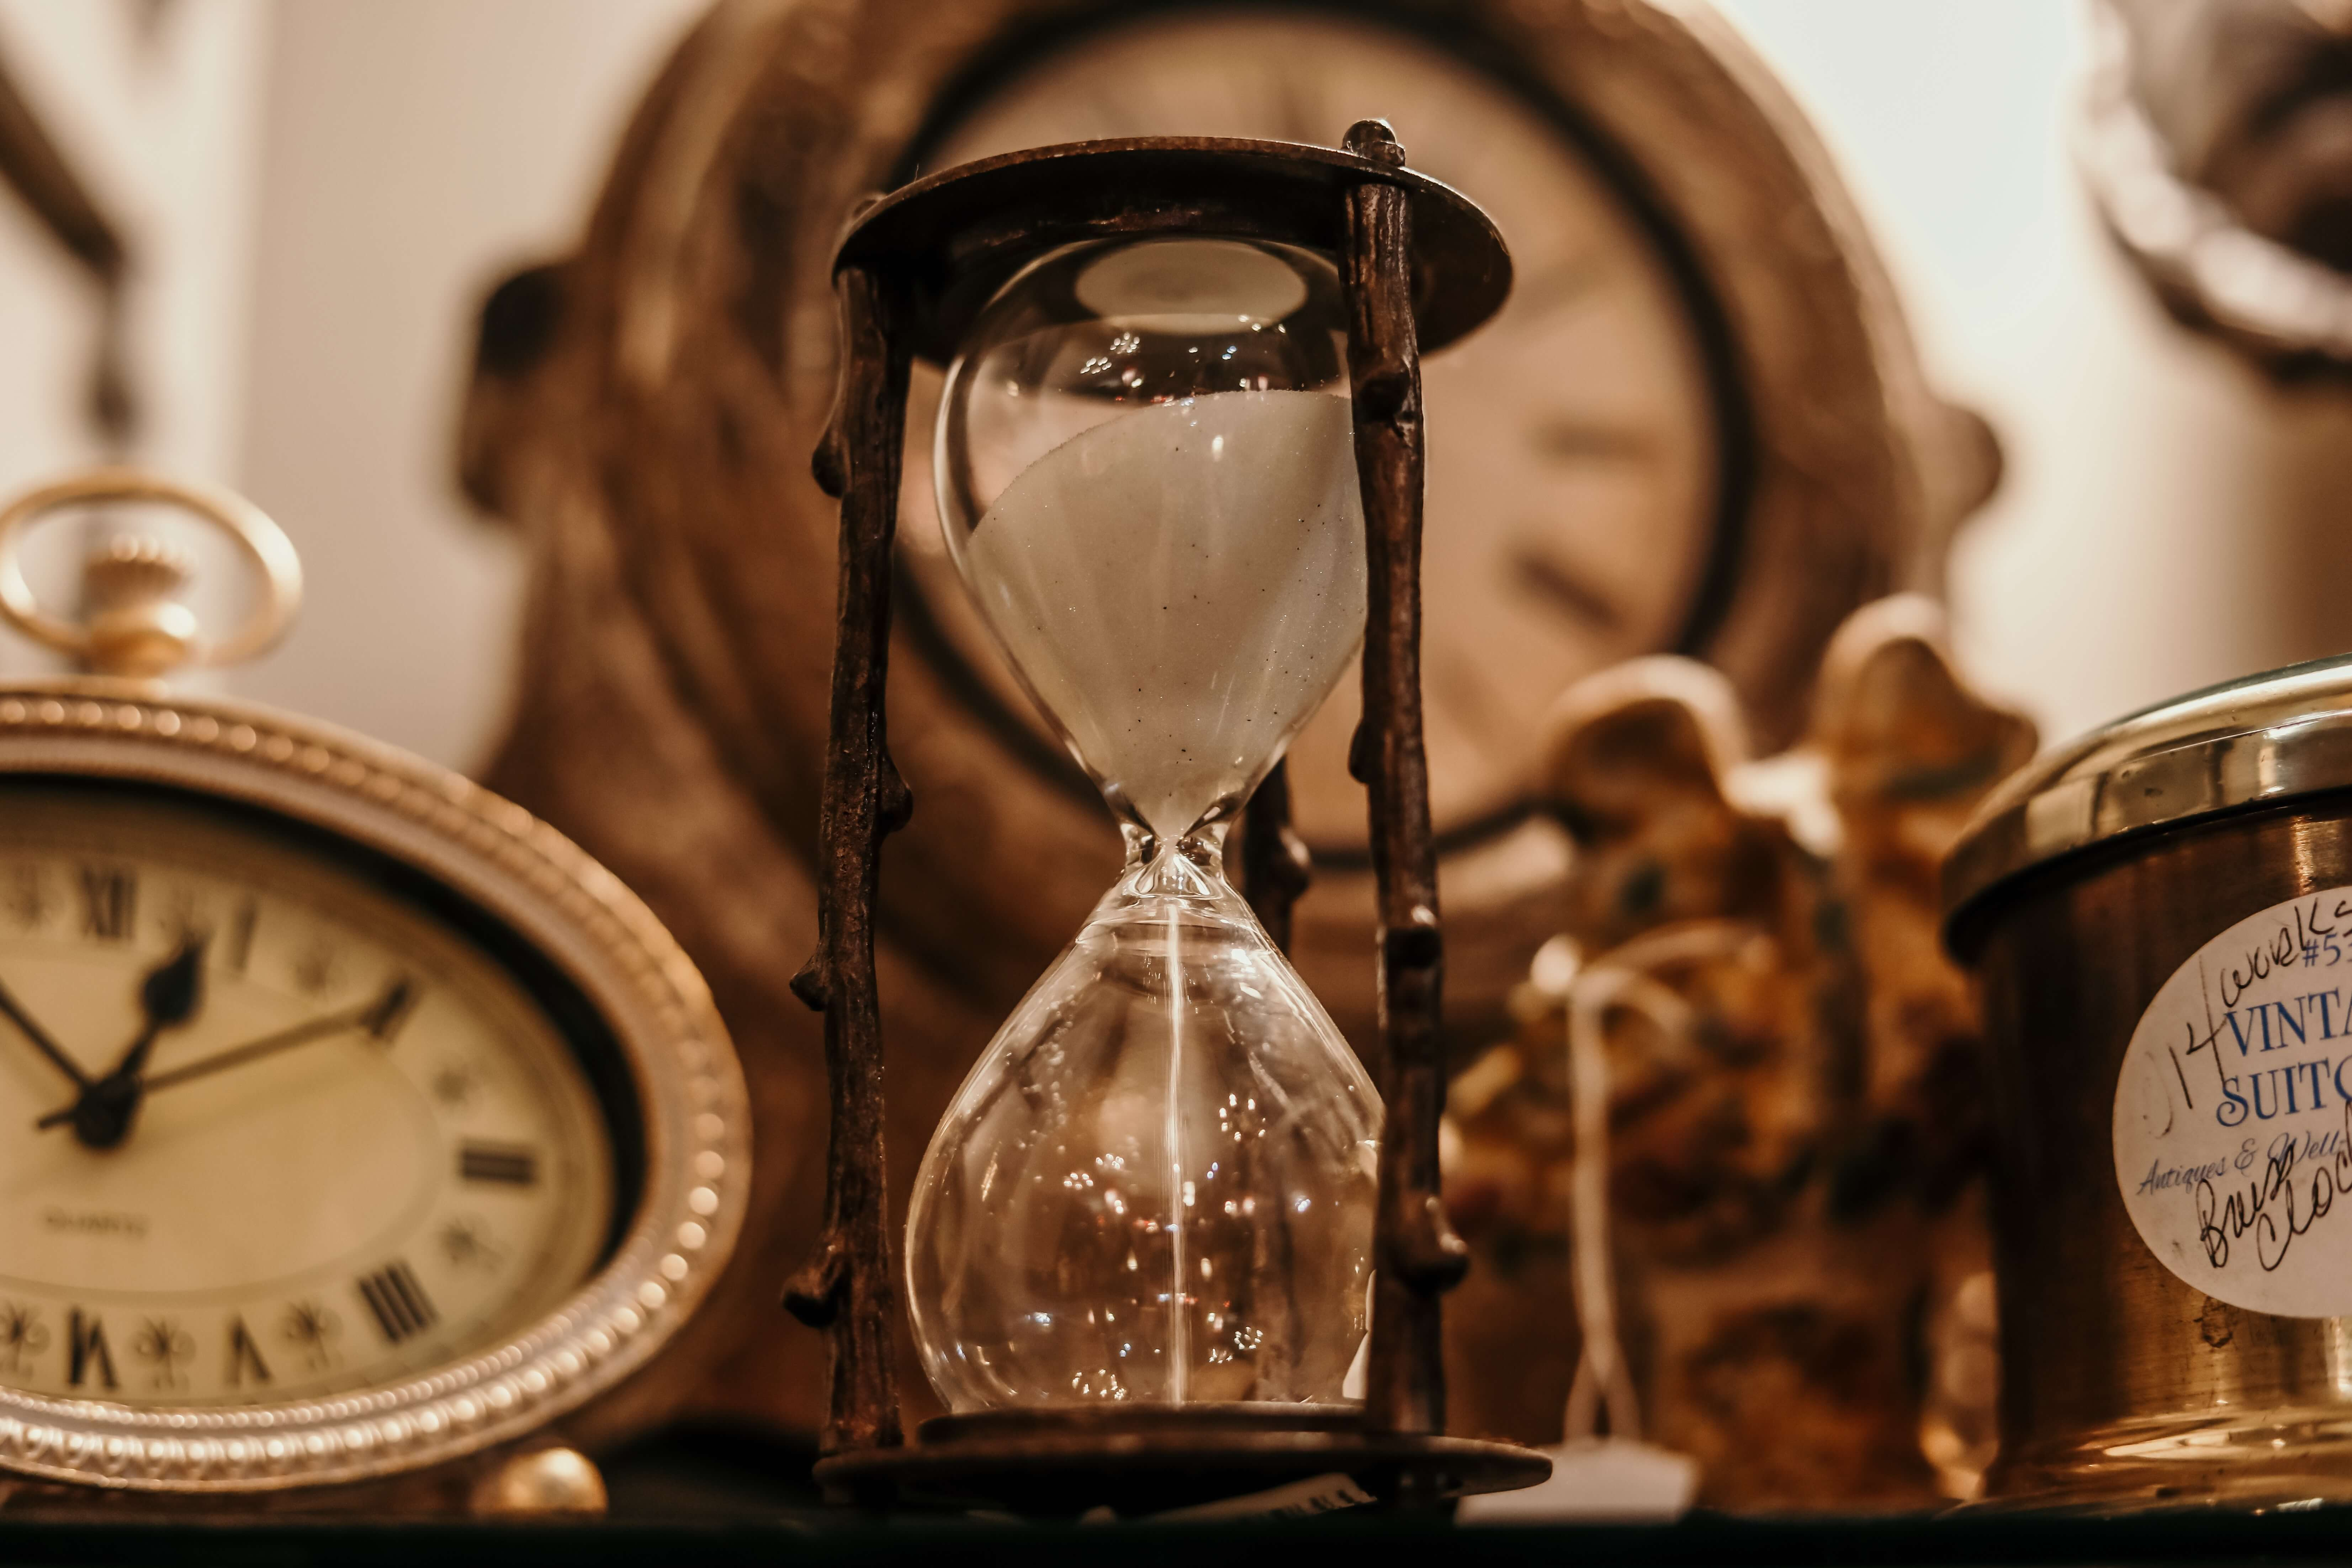 hourglass and old clocks